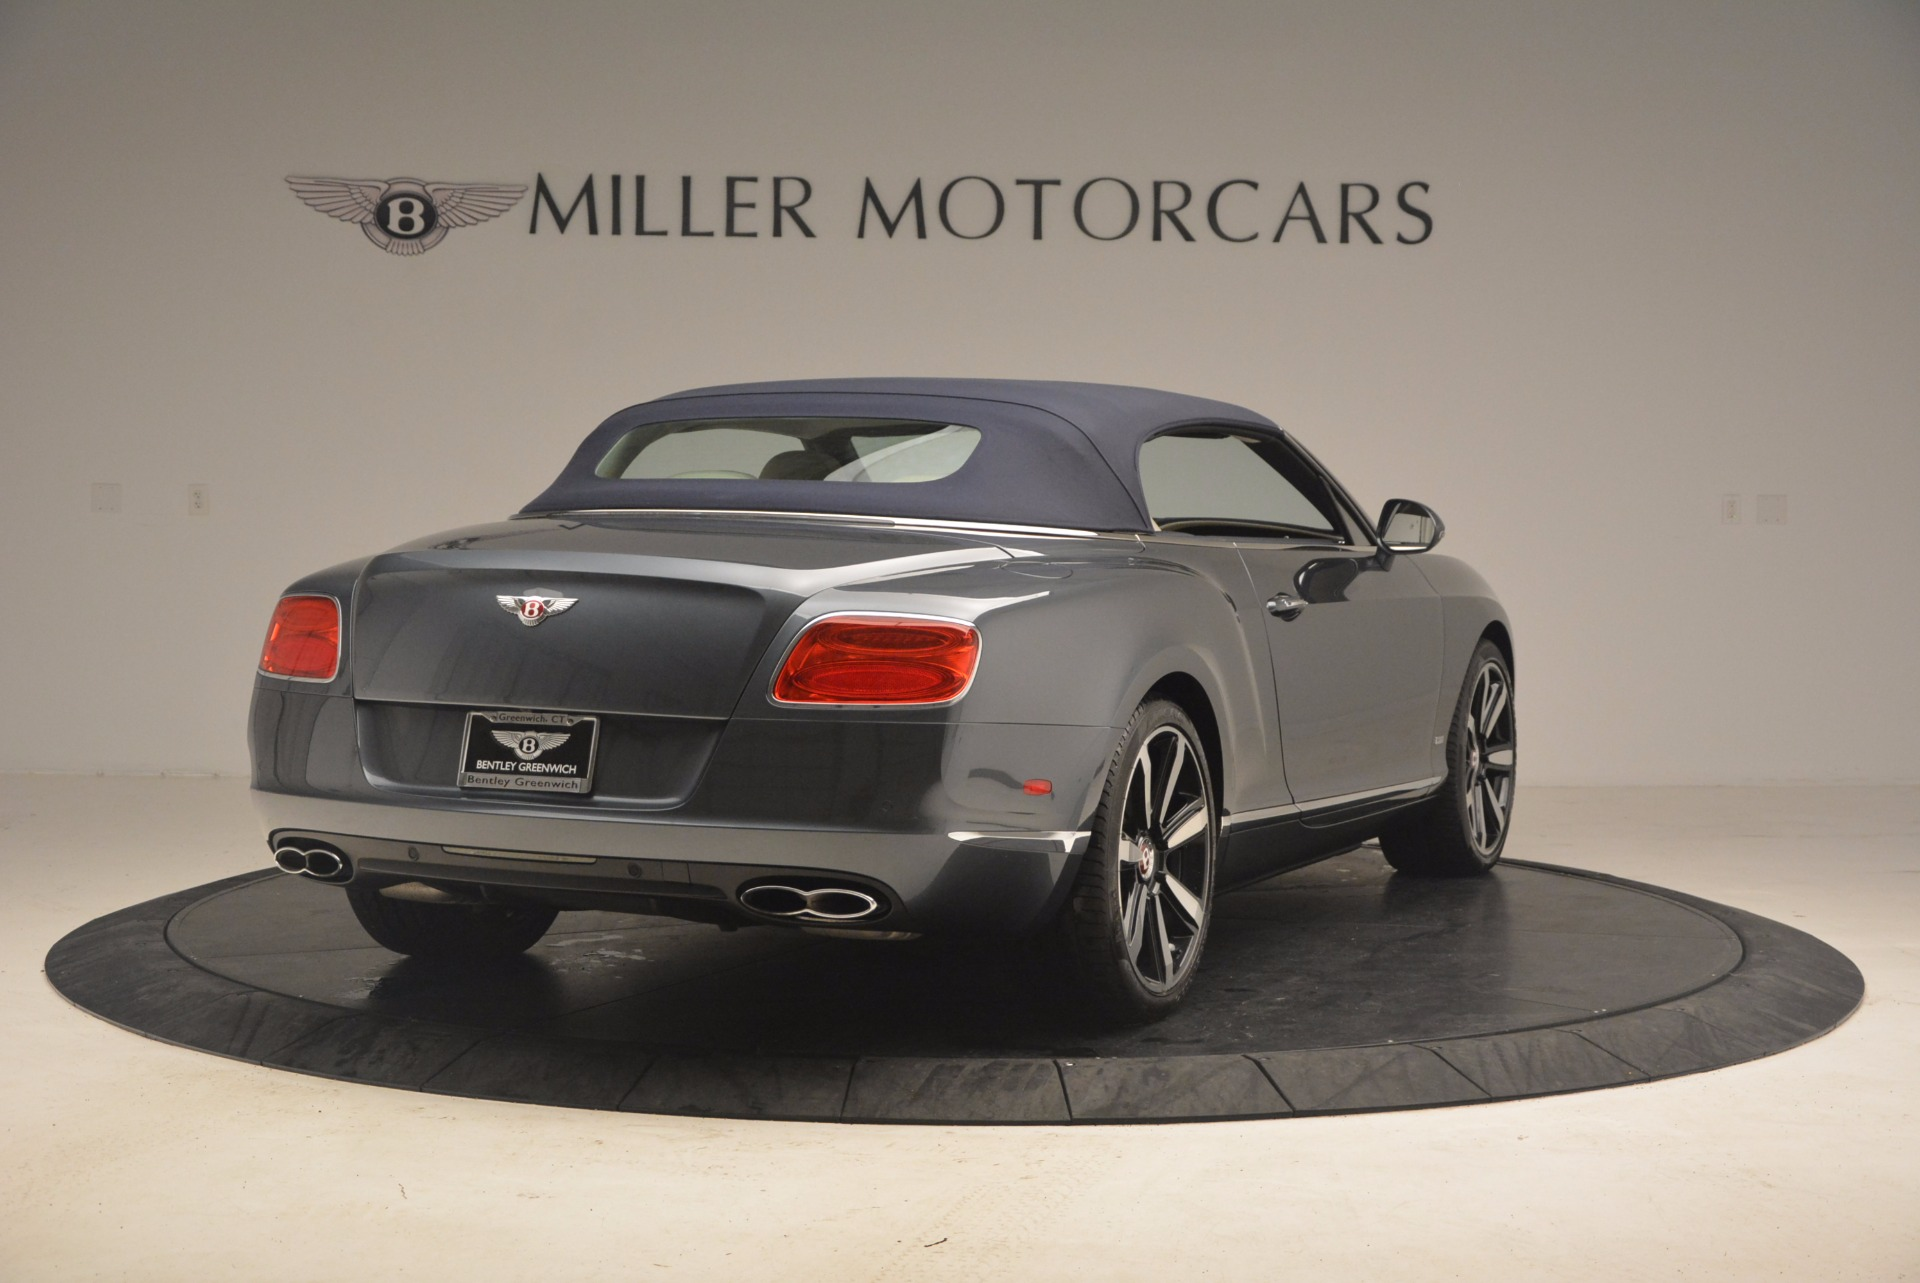 Used 2013 Bentley Continental GT V8 Le Mans Edition, 1 of 48 For Sale In Greenwich, CT 1288_p20